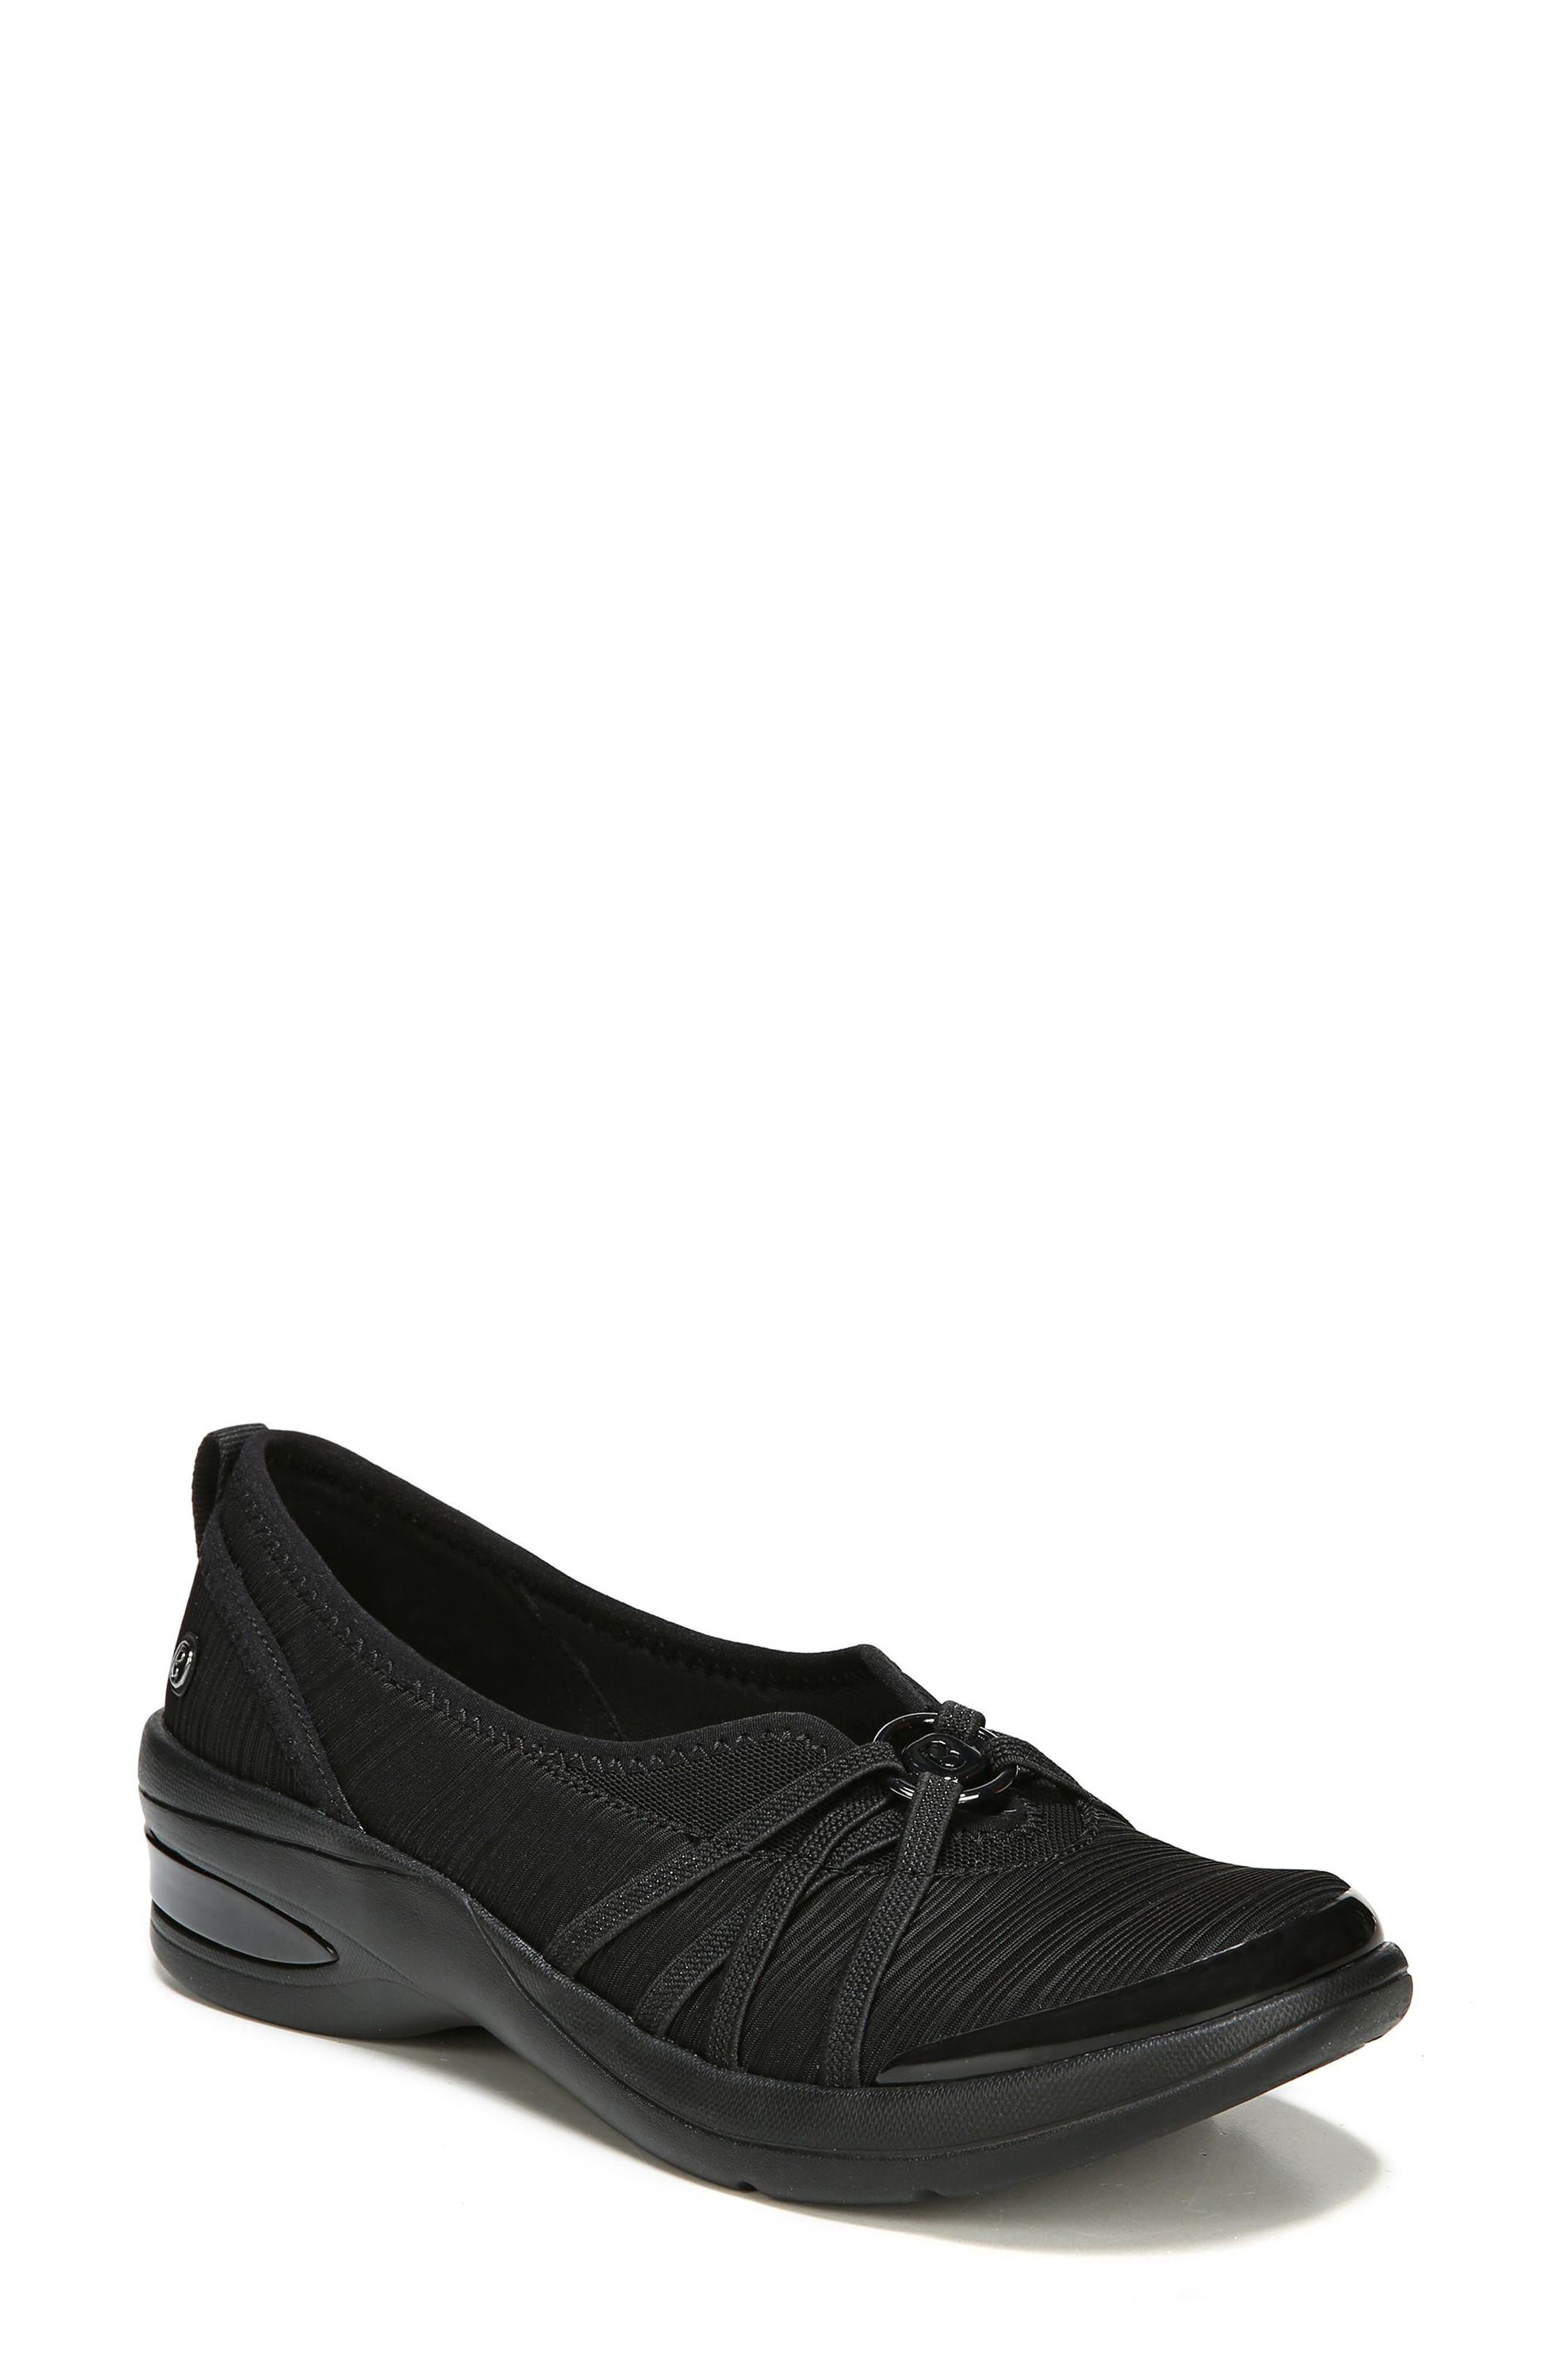 273a89a40 Women's Bzees Comfort Shoes: Sale | Nordstrom